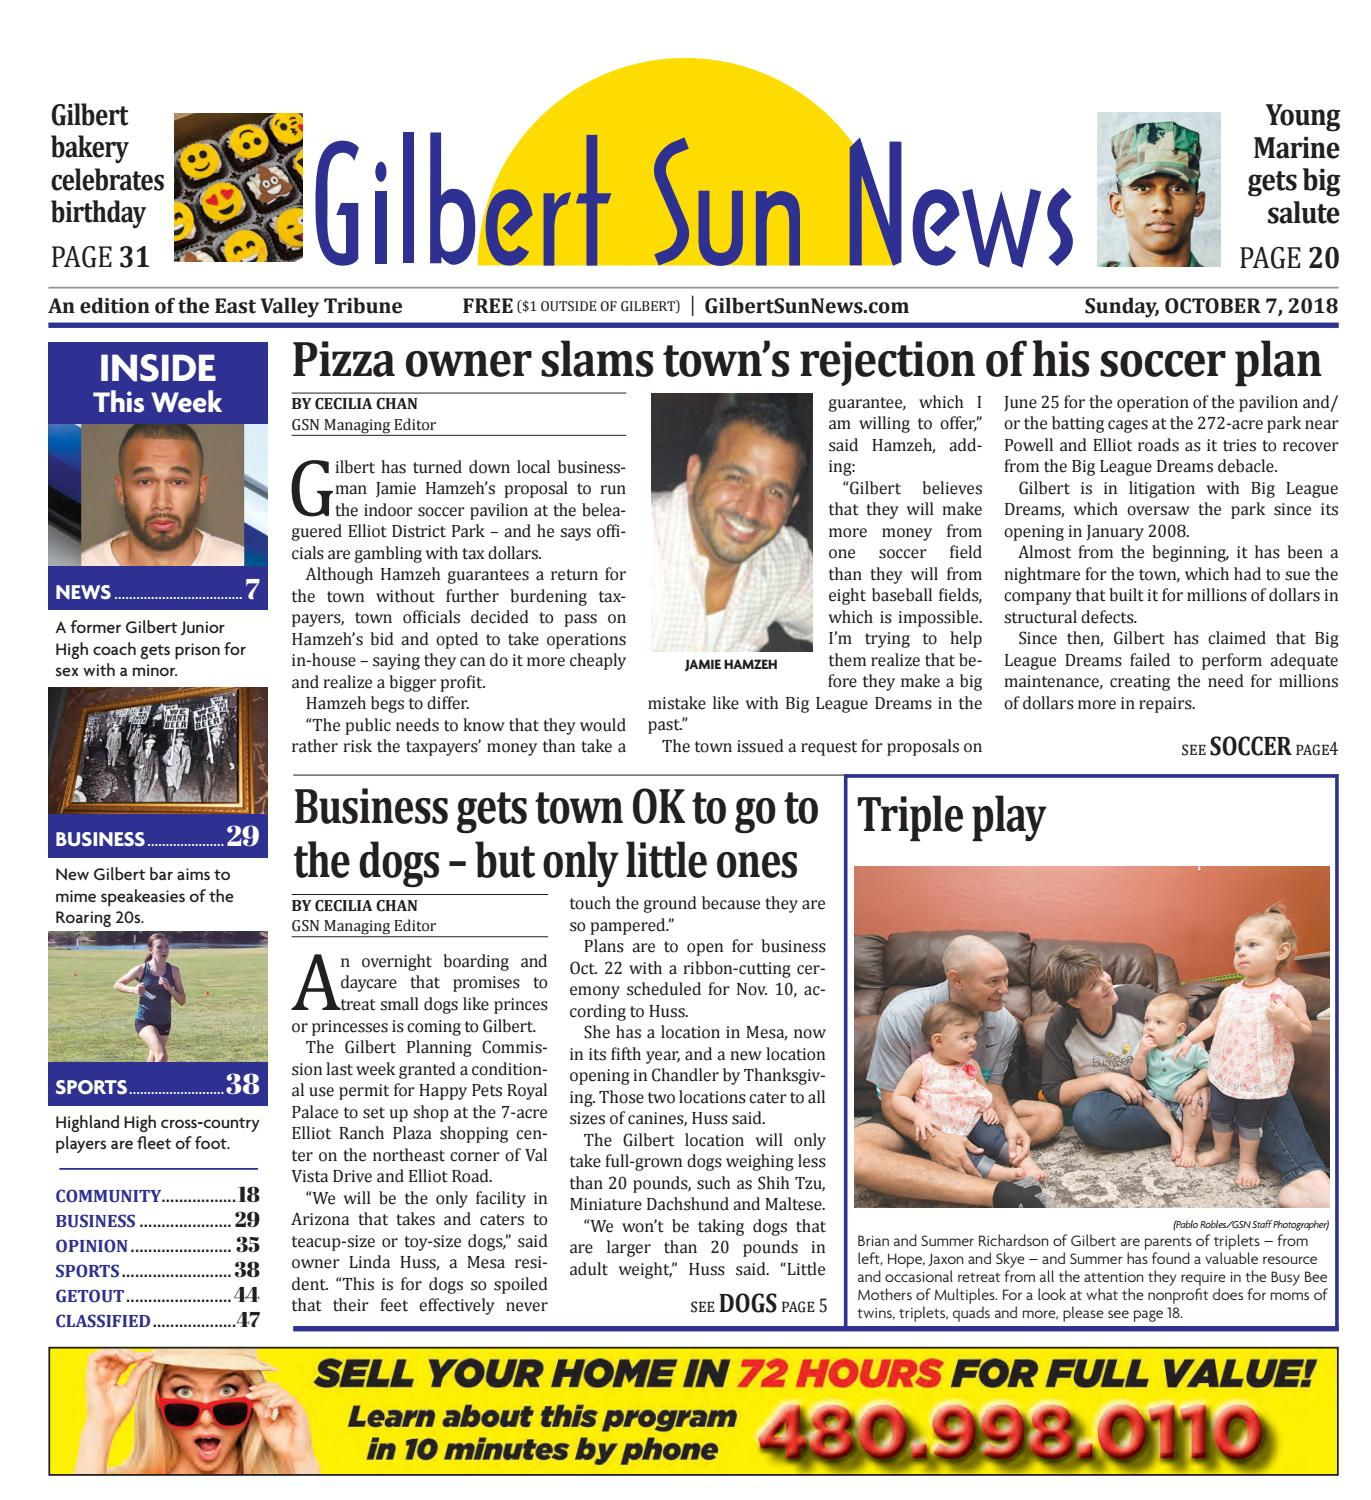 Gilbert Sun News October 7, 2018 by Times Media Group - issuu